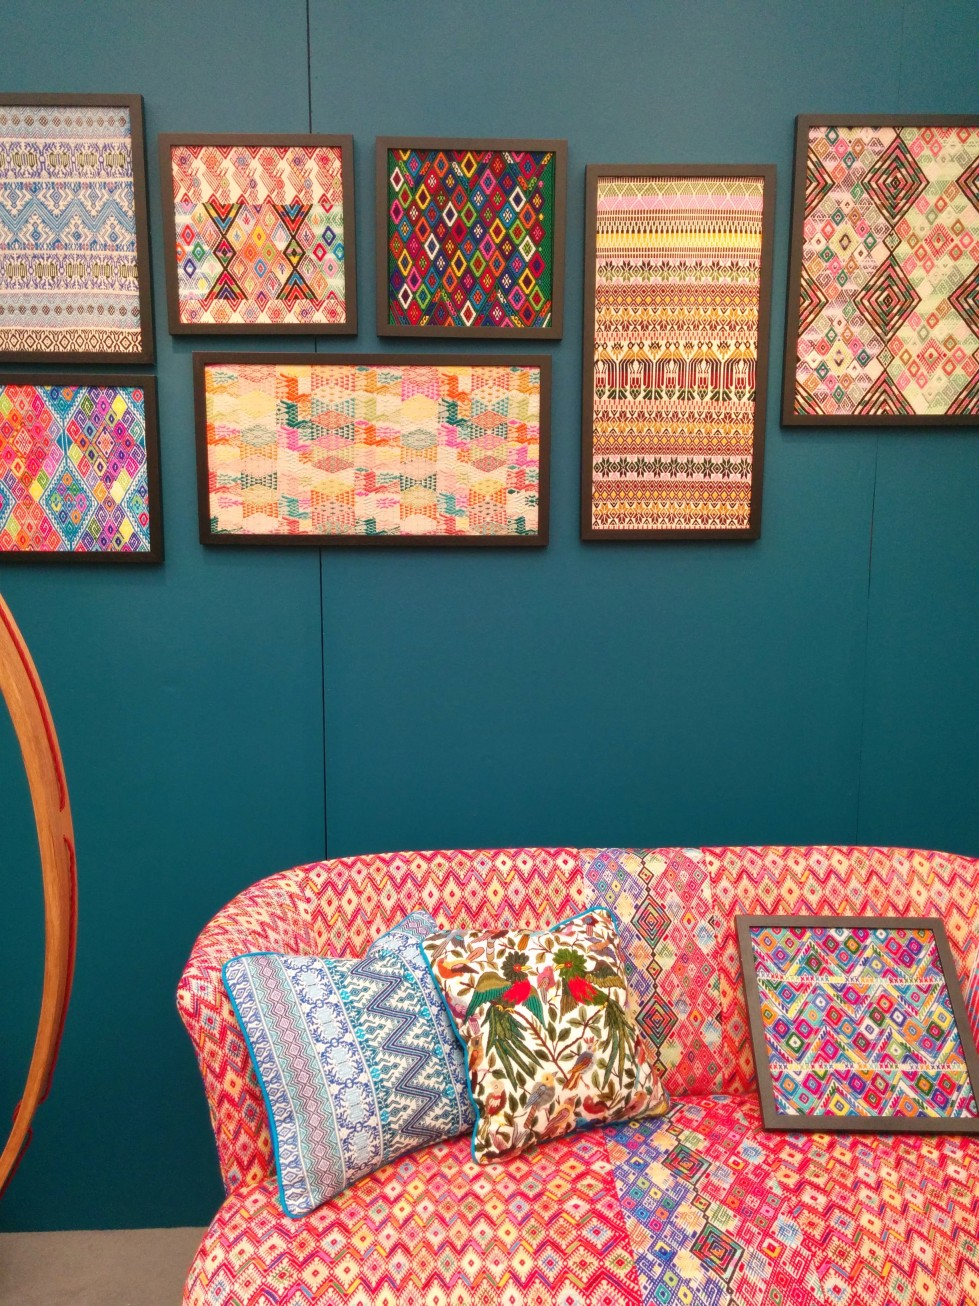 Hand-woven fabrics in frames and on furniture